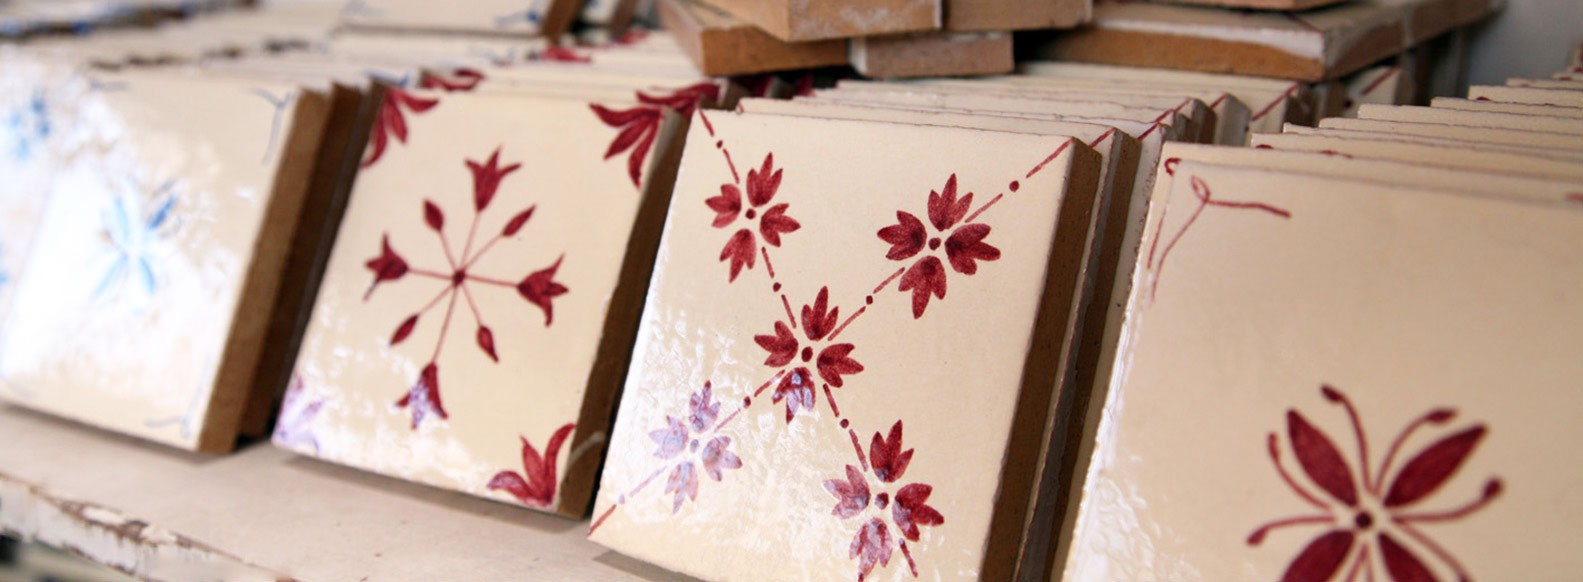 Ordering handmade ceramic tiles for your kitchen